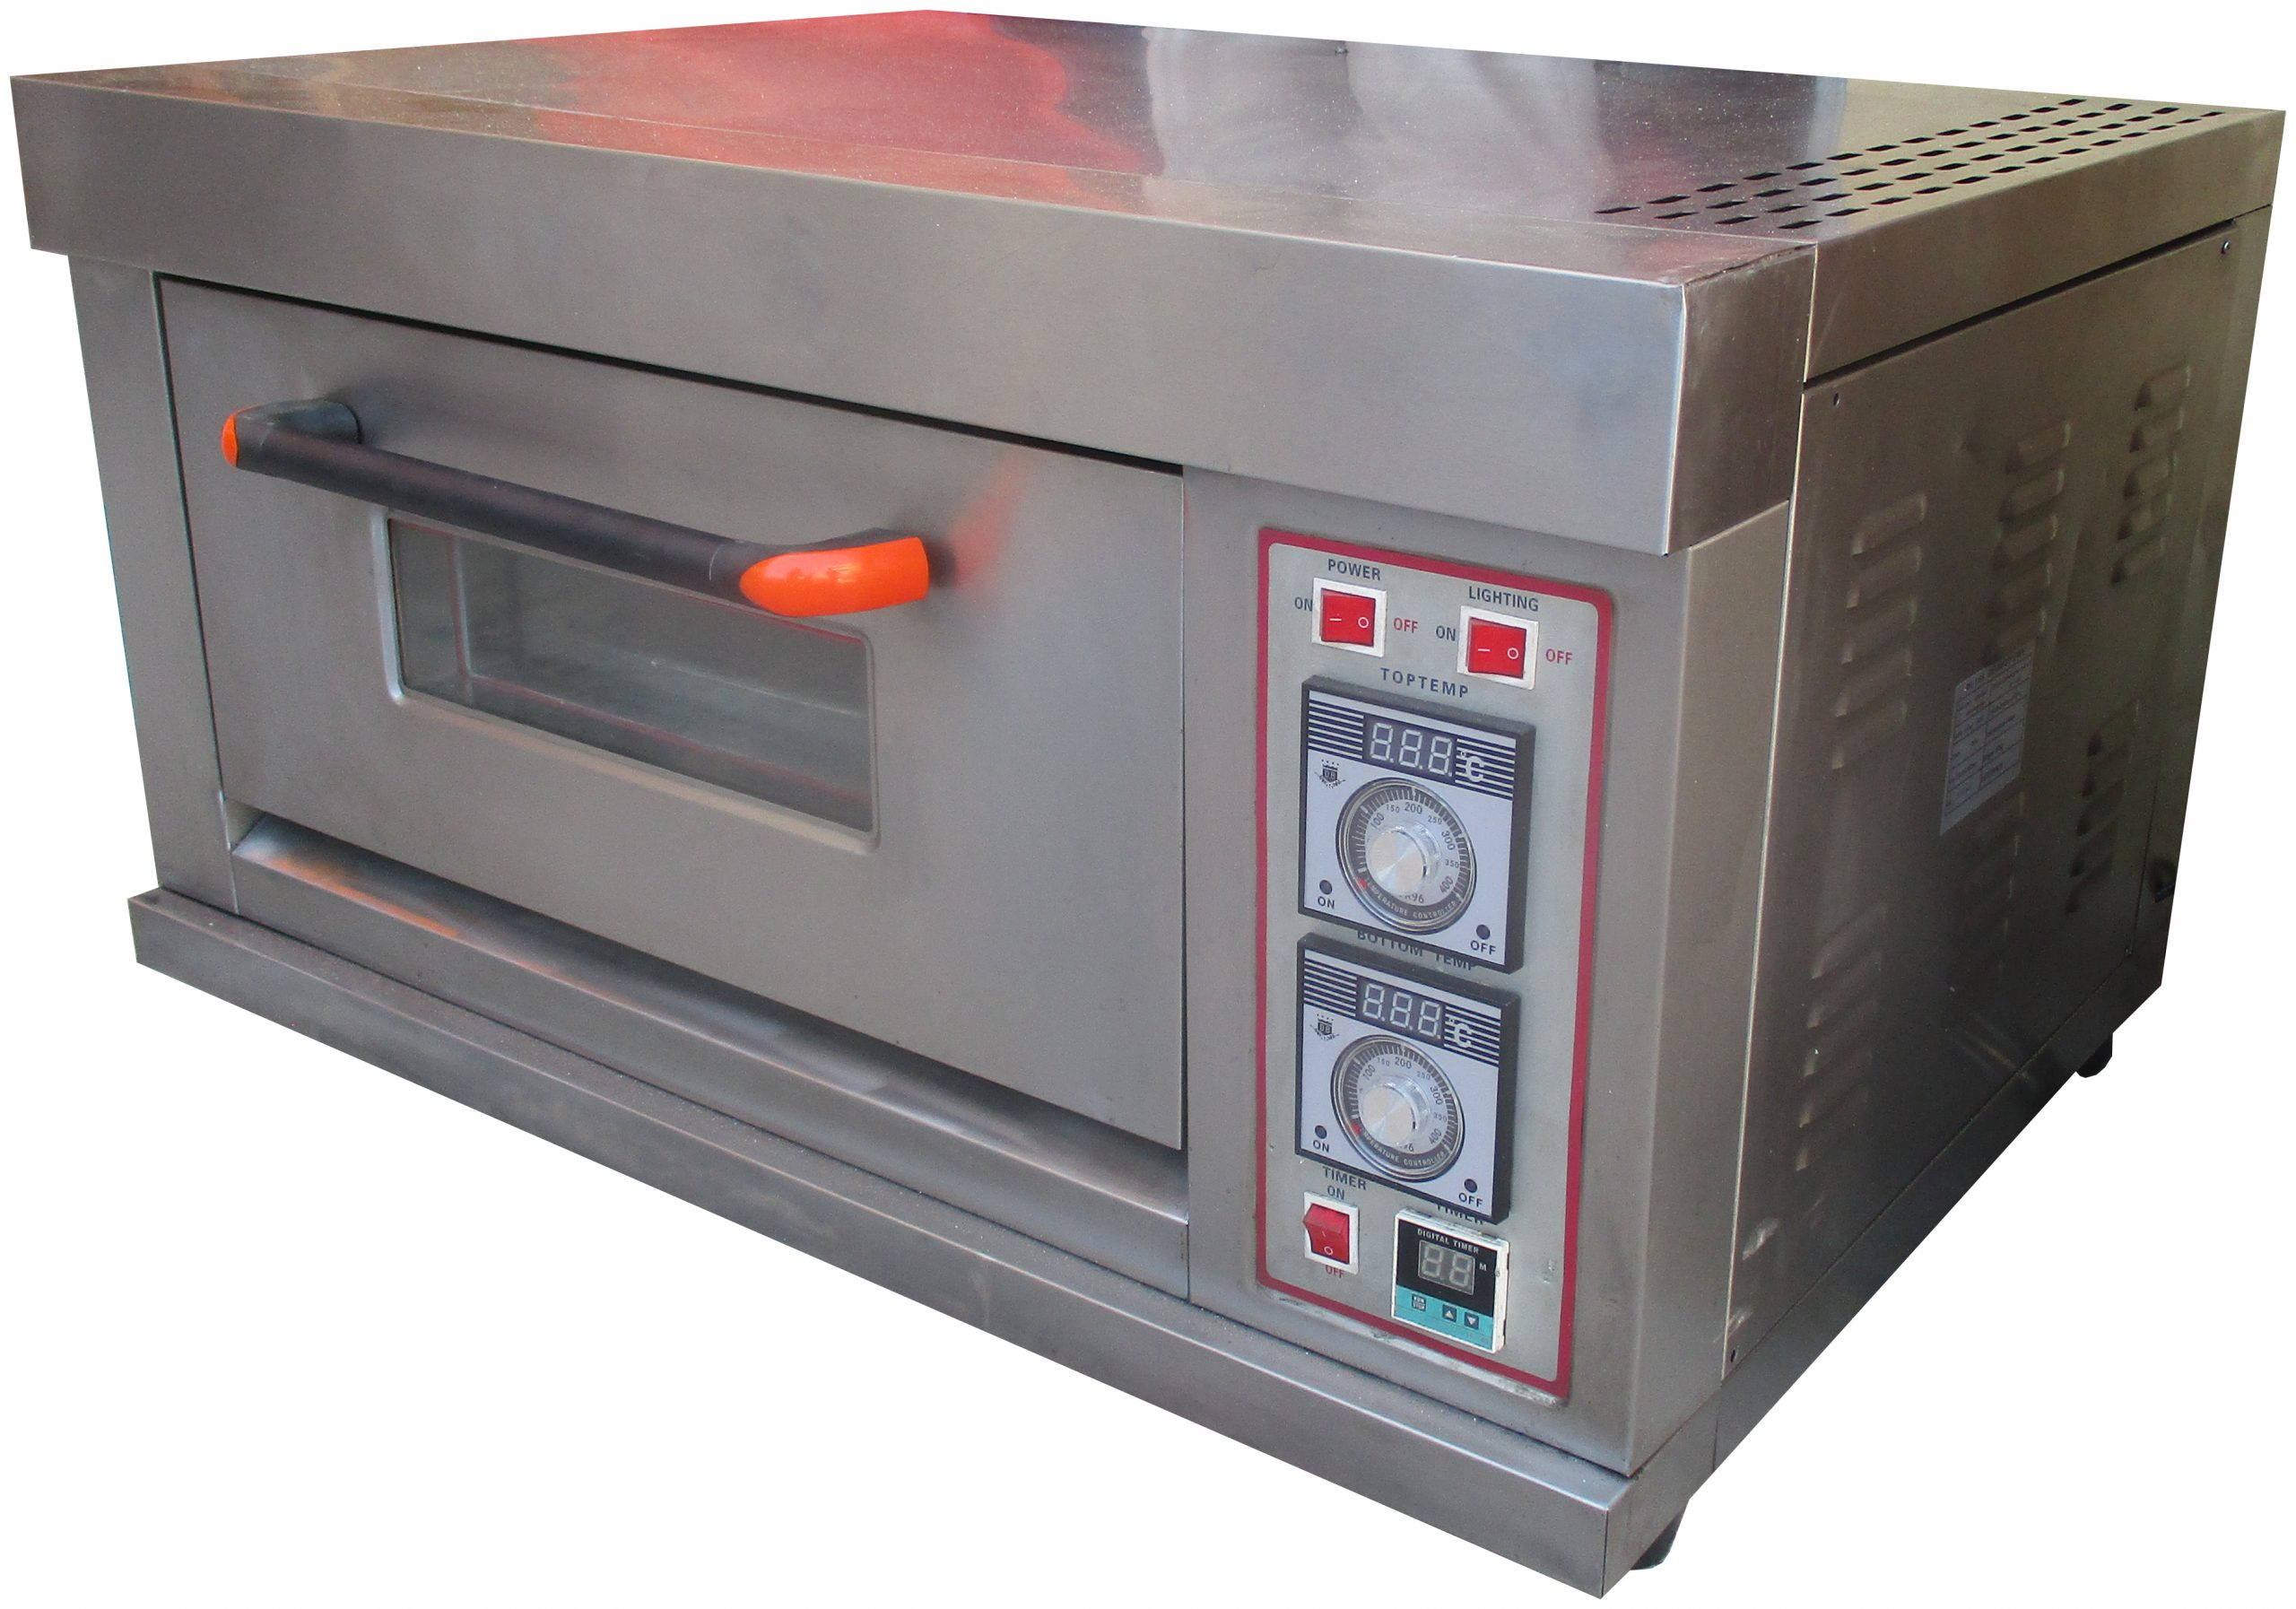 Jual HOT DEAL Mesin Oven Roti Gas 1 Loyang RFL-11SS di Banjarmasin